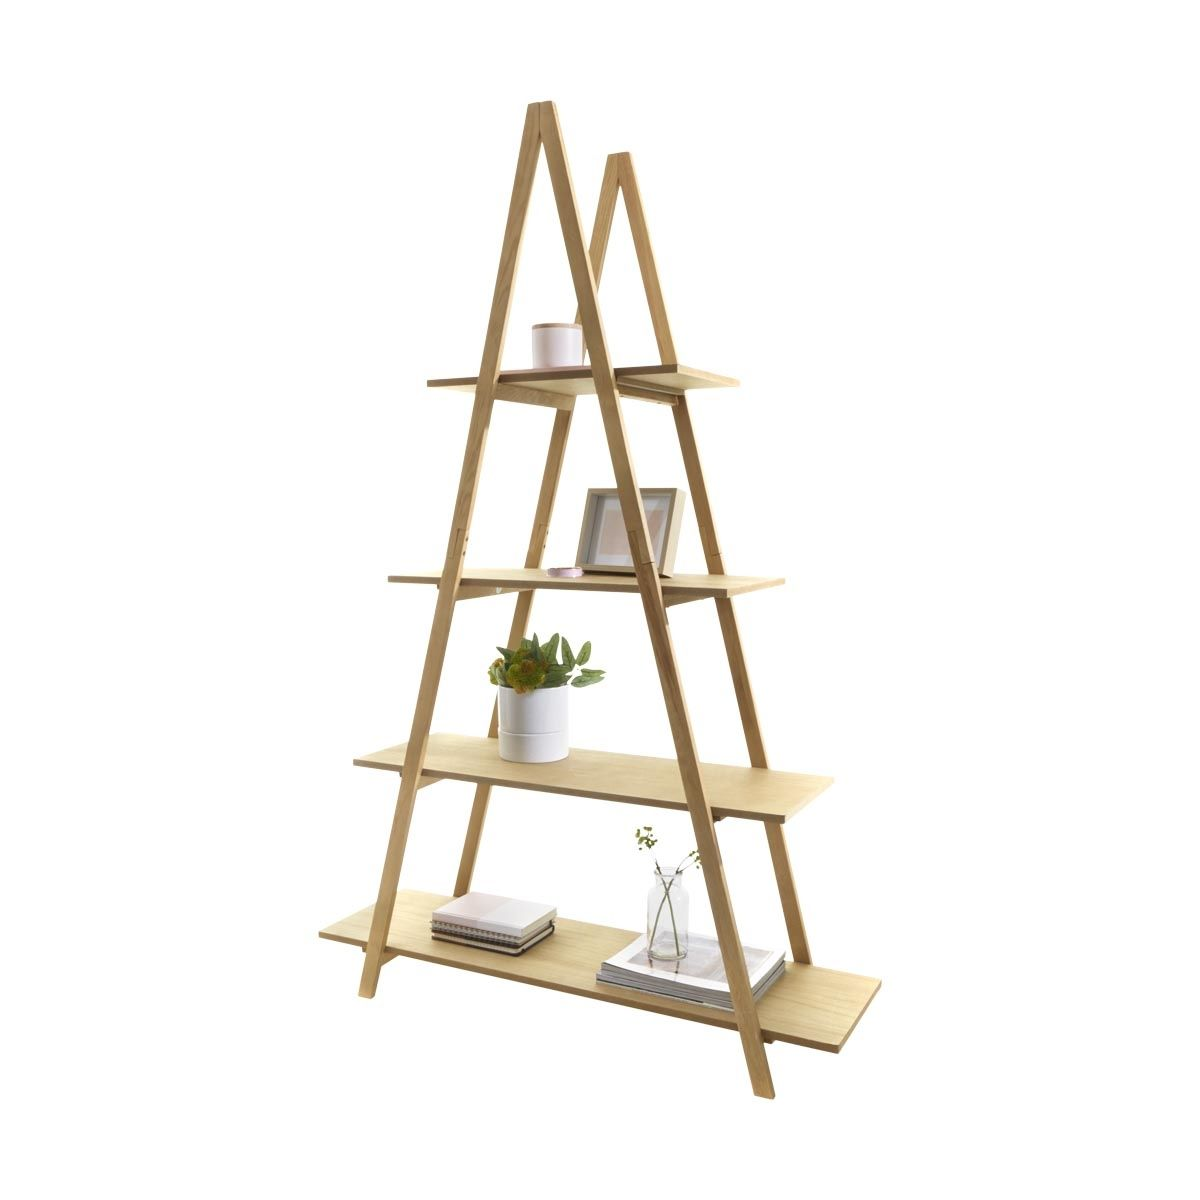 A Frame Ladder Bookshelf Kmart Ladder Shelf Decor Ladder Bookshelf A Frame Ladder